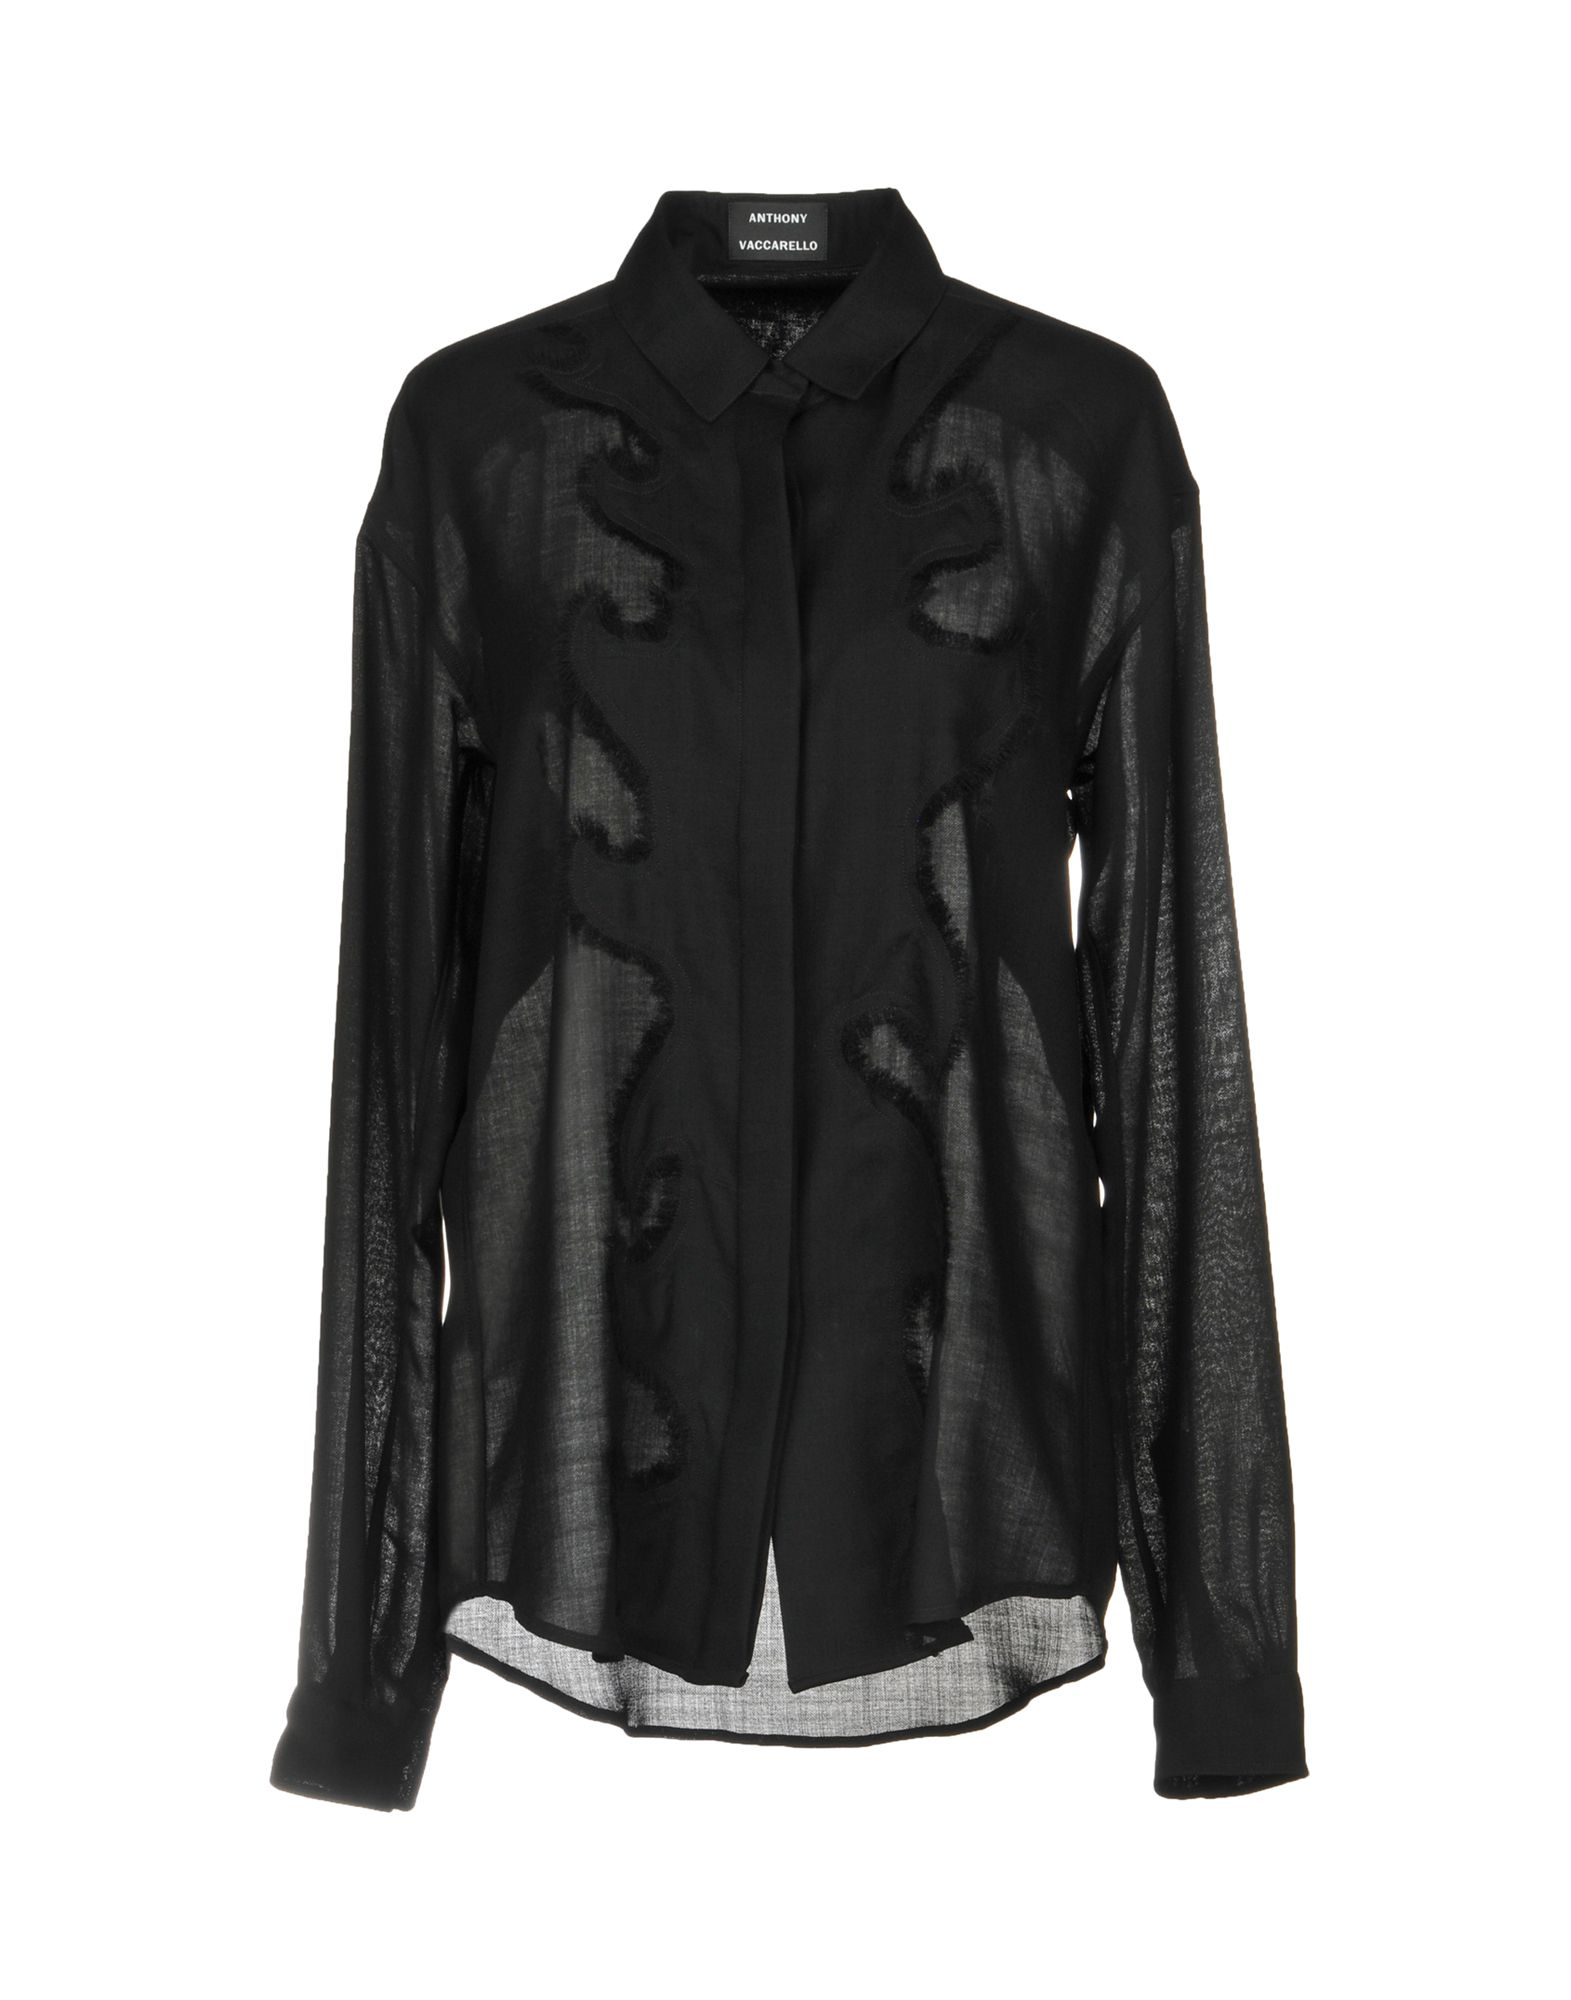 ANTHONY VACCARELLO Solid Color Shirts & Blouses in Black